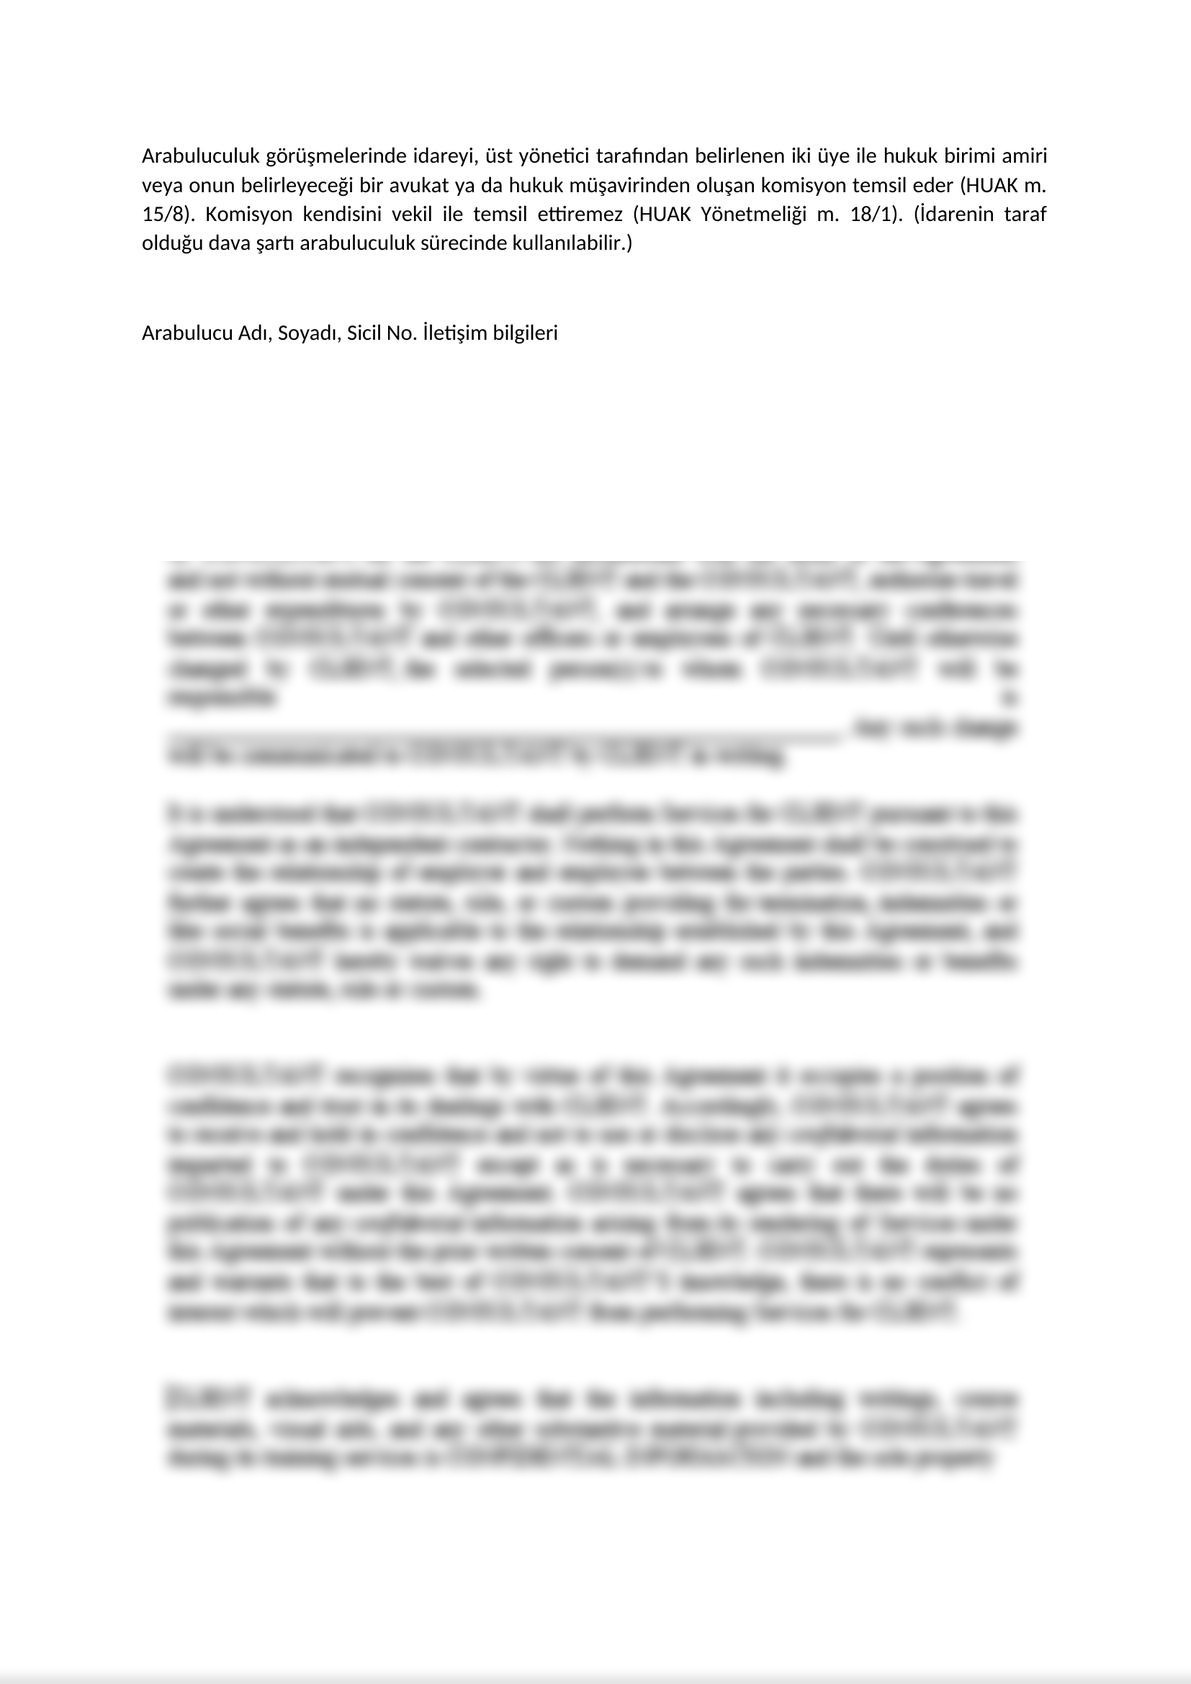 Invitatition Letter to Parties of Mandatory Mediation on Commercial Disputes - Turkish -2